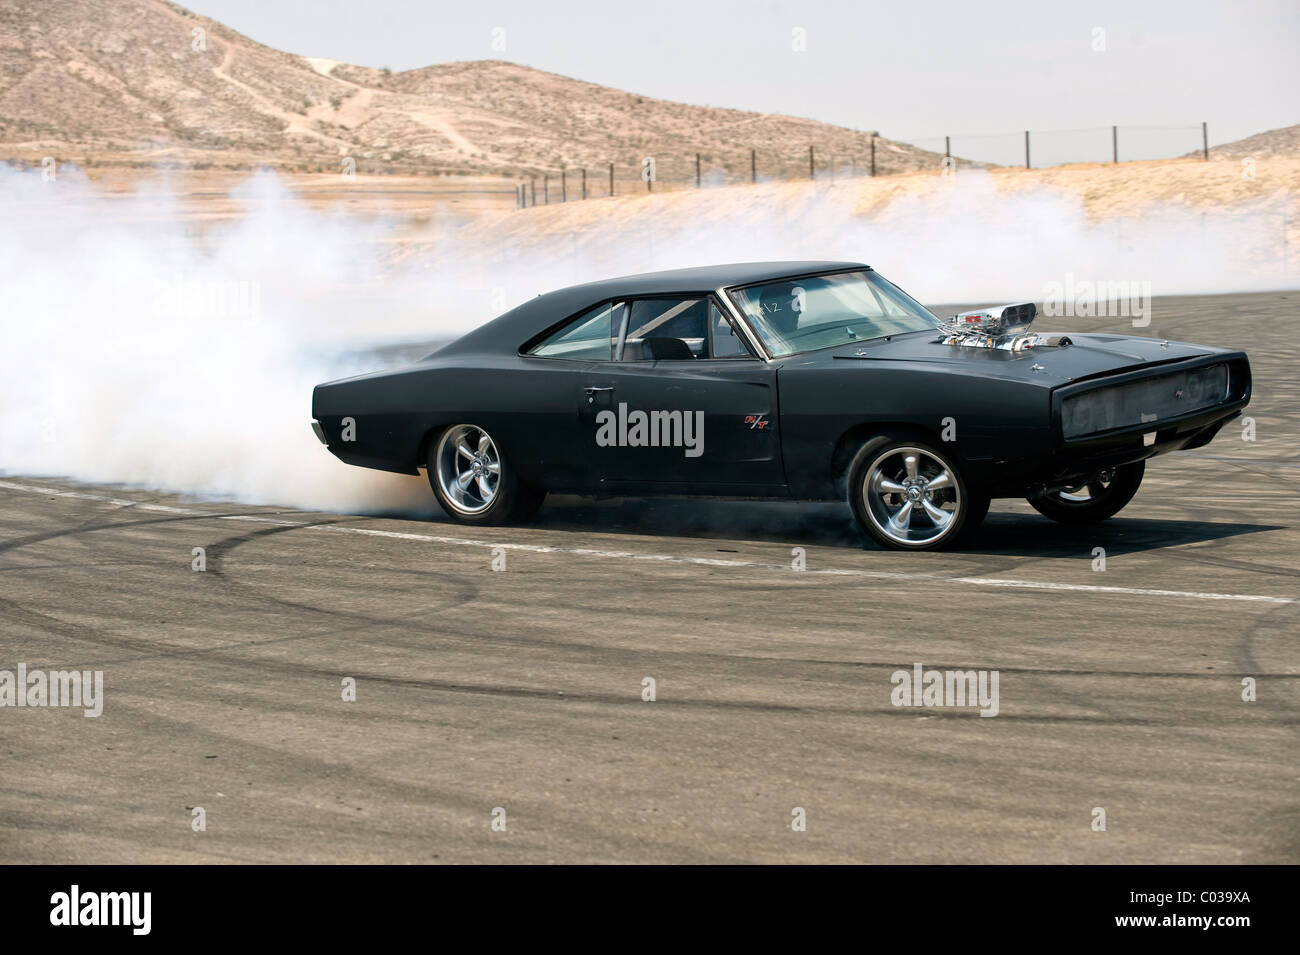 1970 DODGE CHARGER FAST & FURIOUS; THE FAST AND THE FURIOUS 4 (2009) Stock Photo